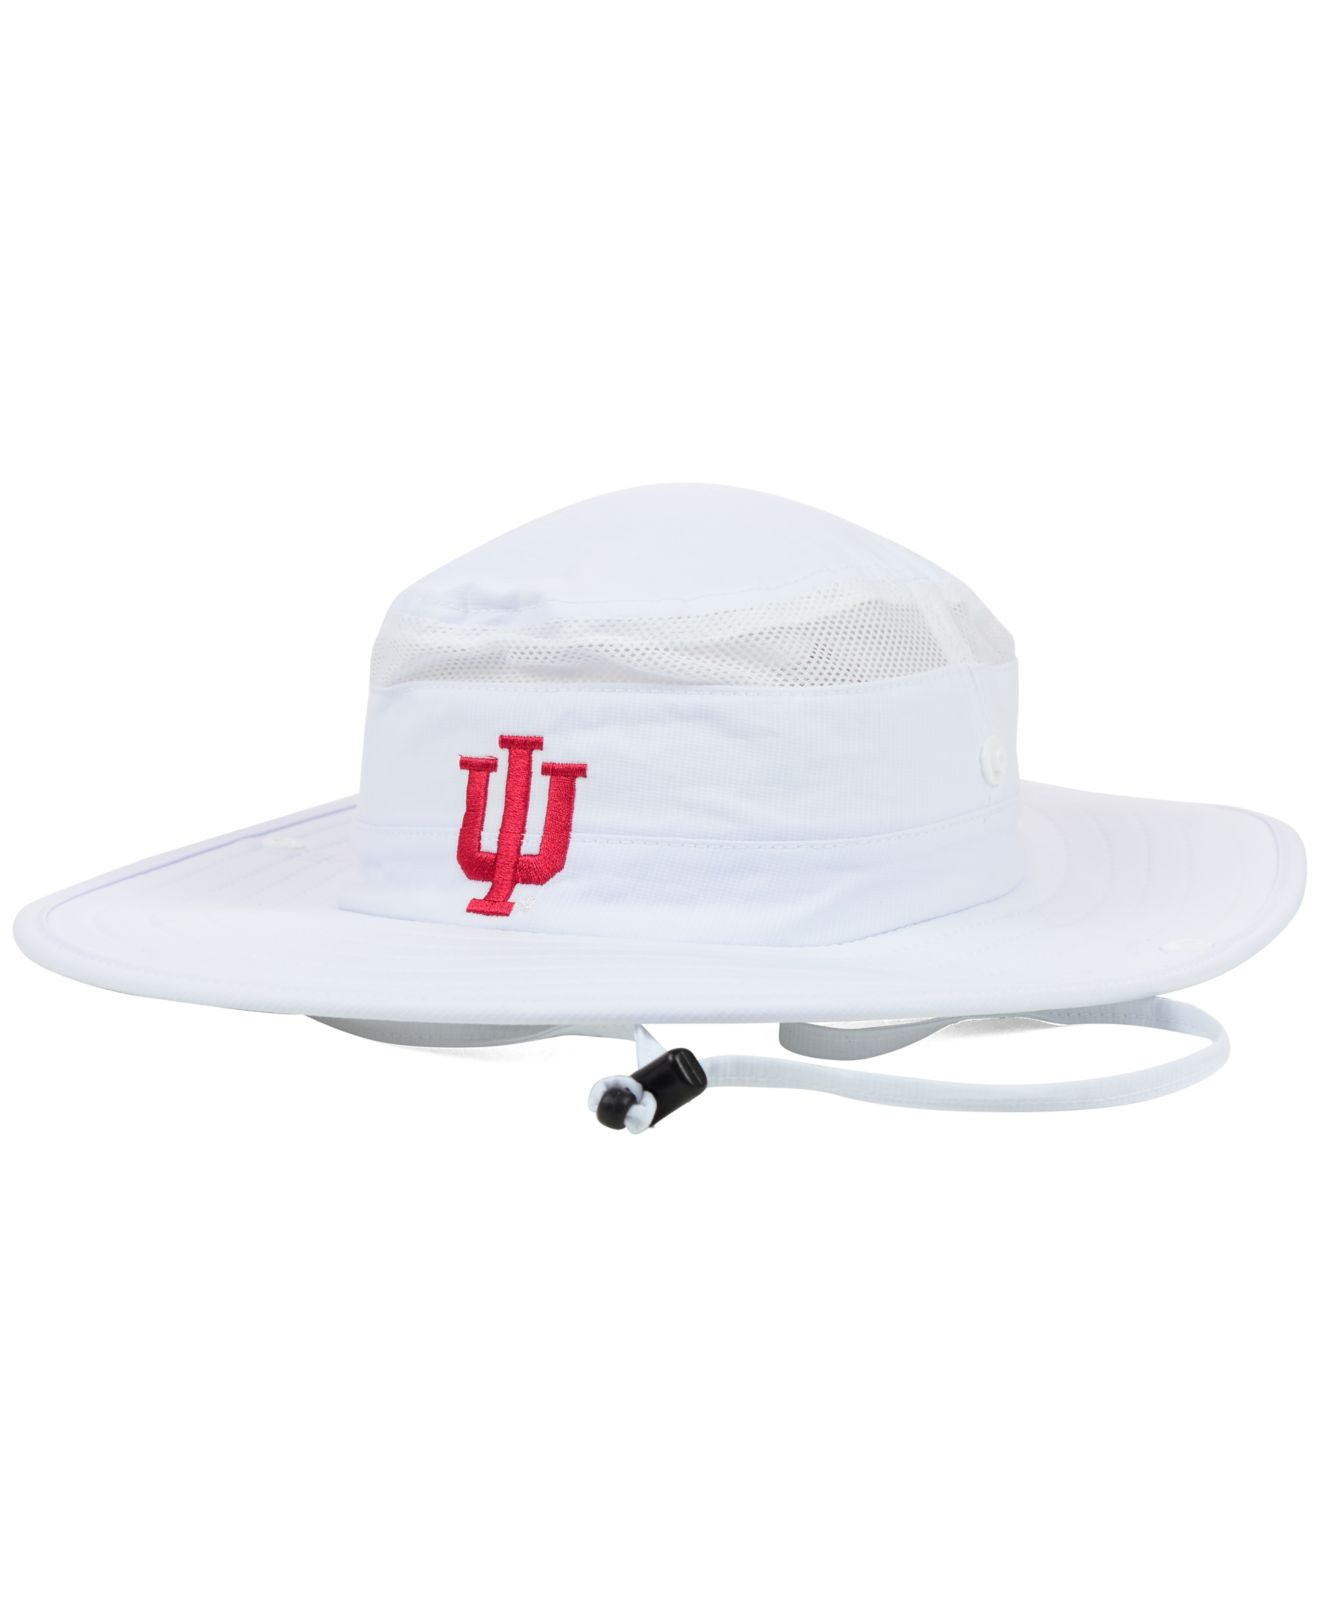 dcef8dcc7fb33 Lyst - adidas Indiana Hoosiers Campus Safari Hat in White for Men